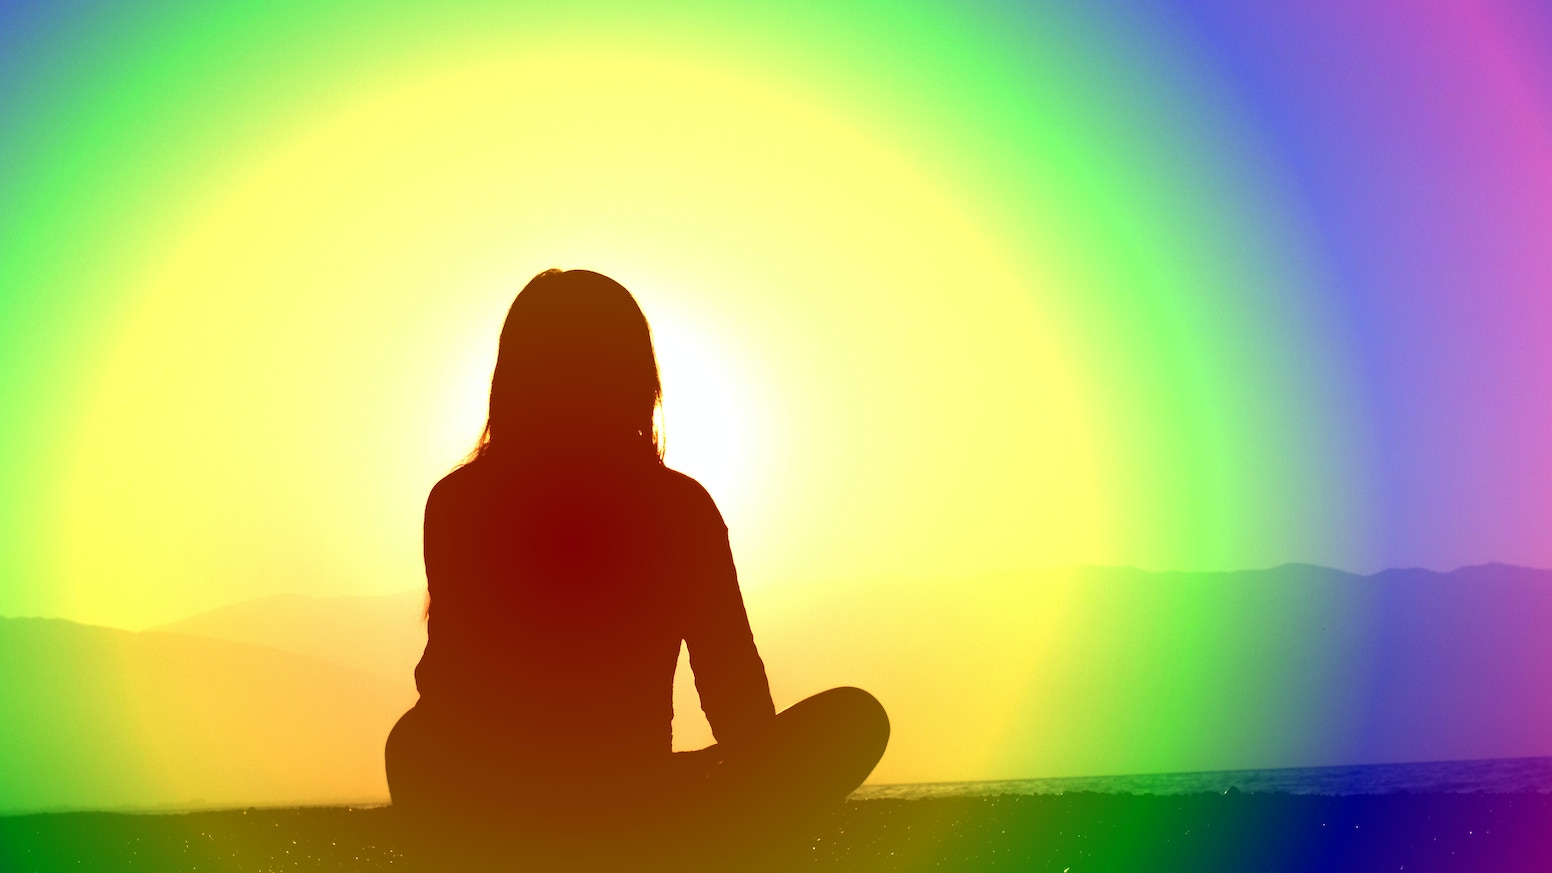 Adventures In Meditation: The Power of Heart Presence by